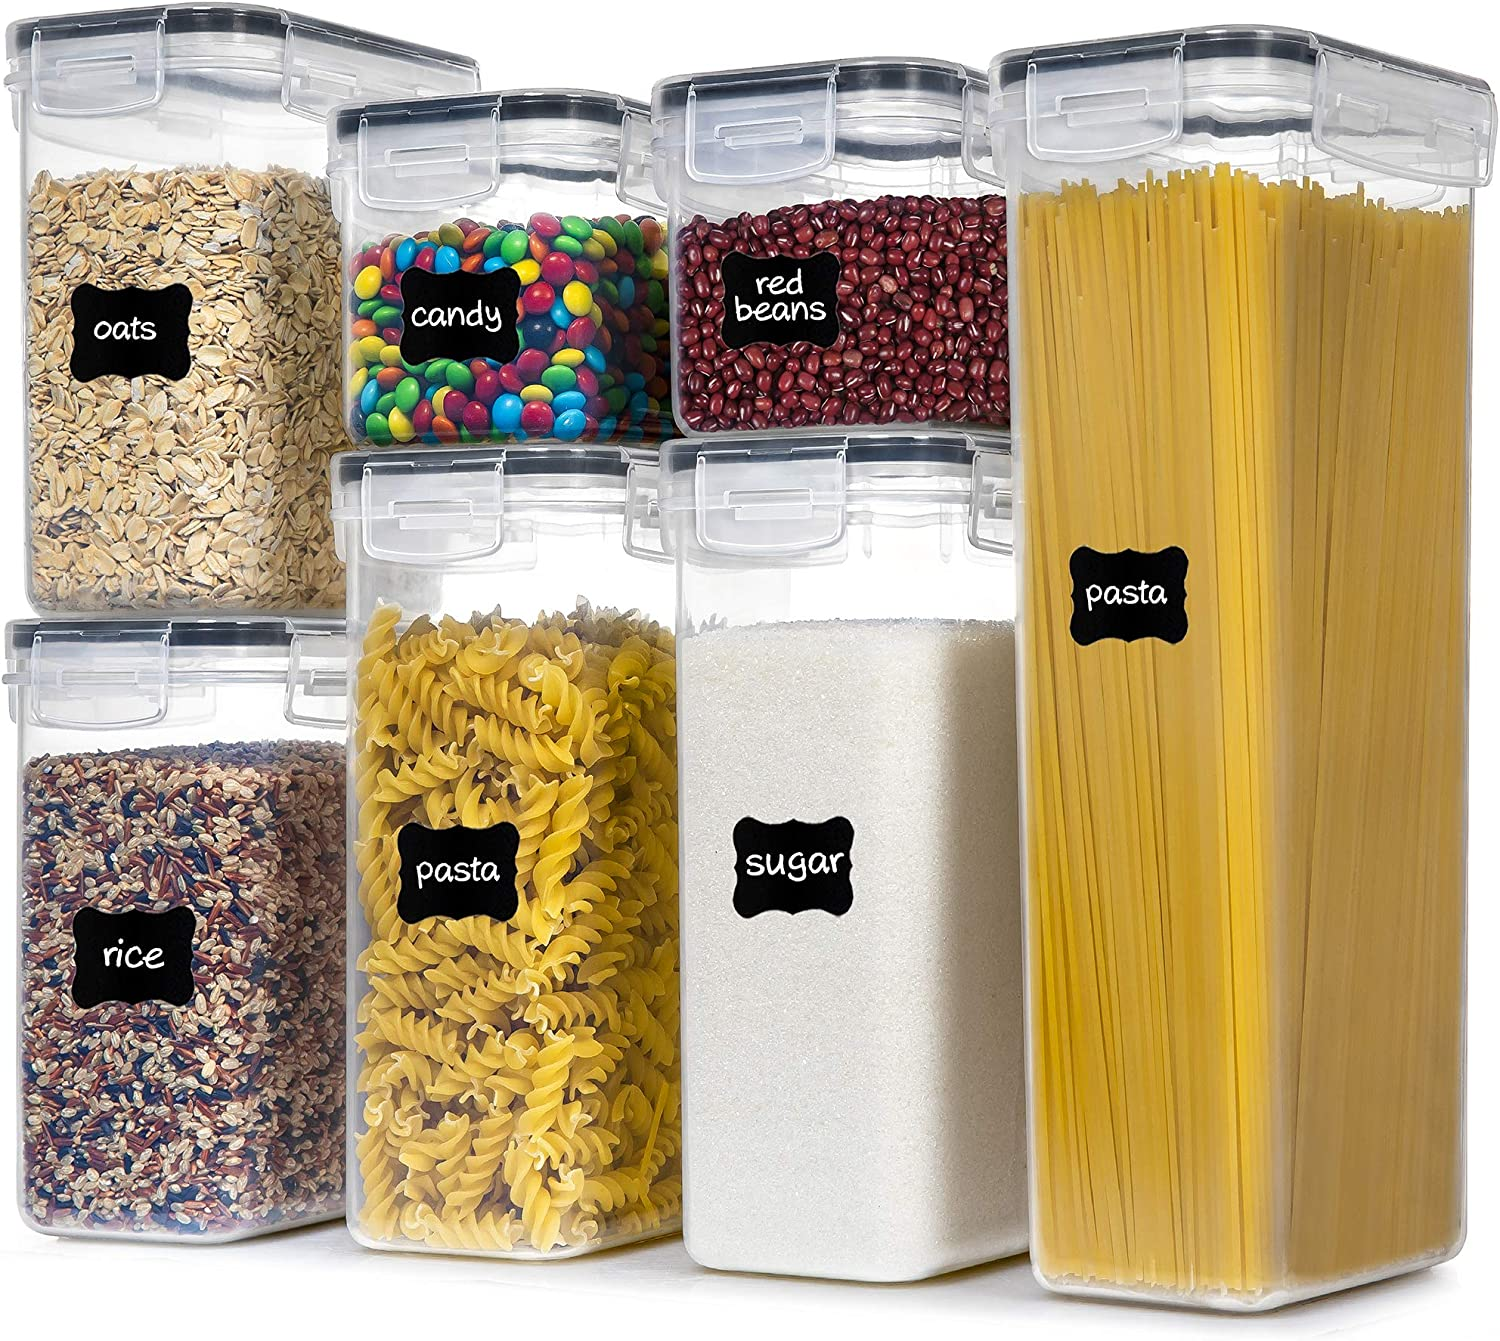 Airtight Food Storage Containers With Lids, PantryStar 7 PCS BPA Free Kitchen Storage Containers for Spaghetti, Pasta, Dry Food,Flour and Sugar, Plastic Canisters for Pantry Organization and Storage